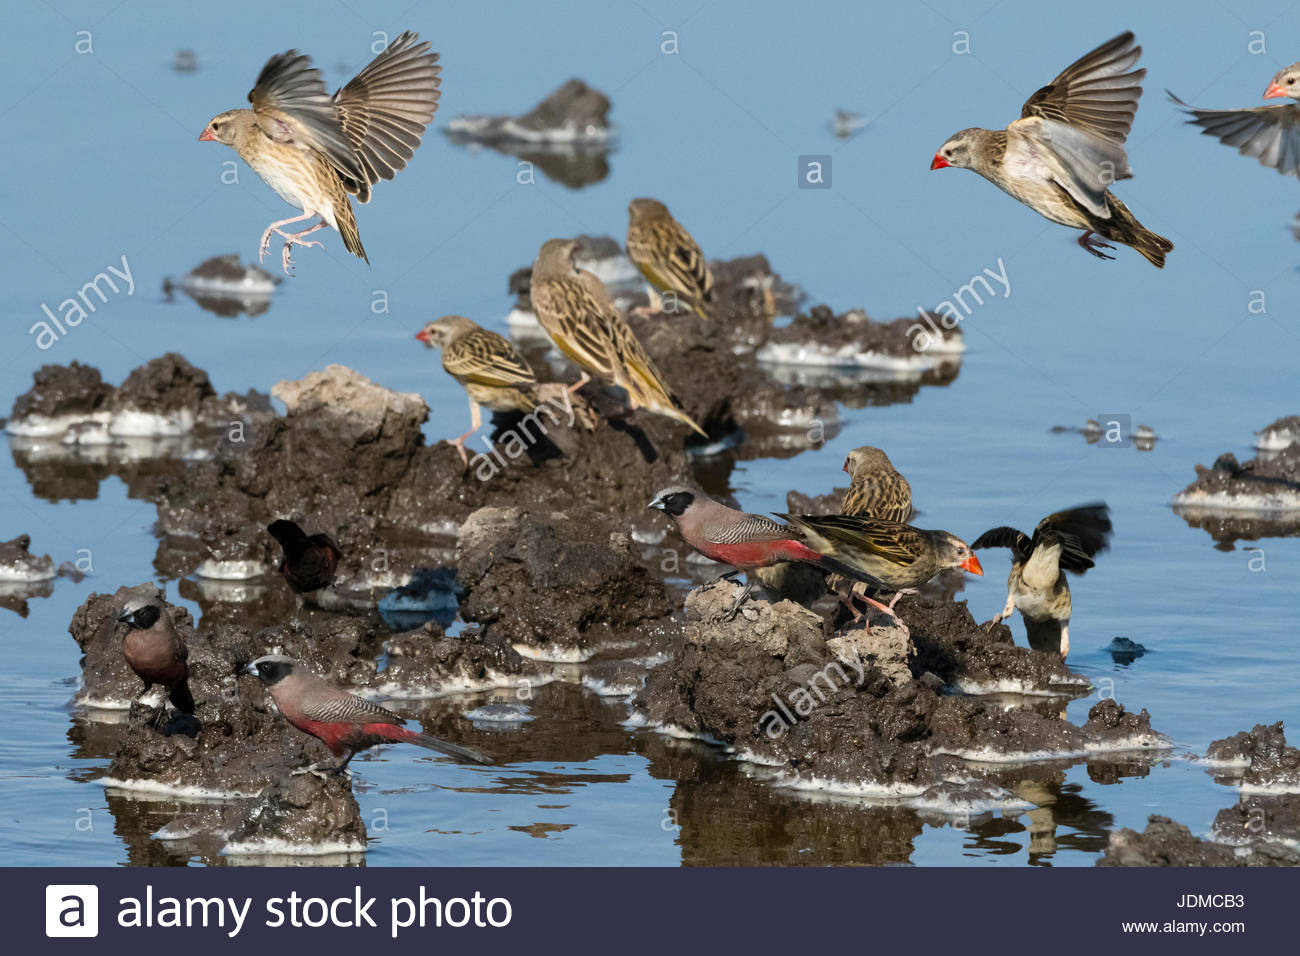 Different species of birds gathered at waterhole. - Stock Image